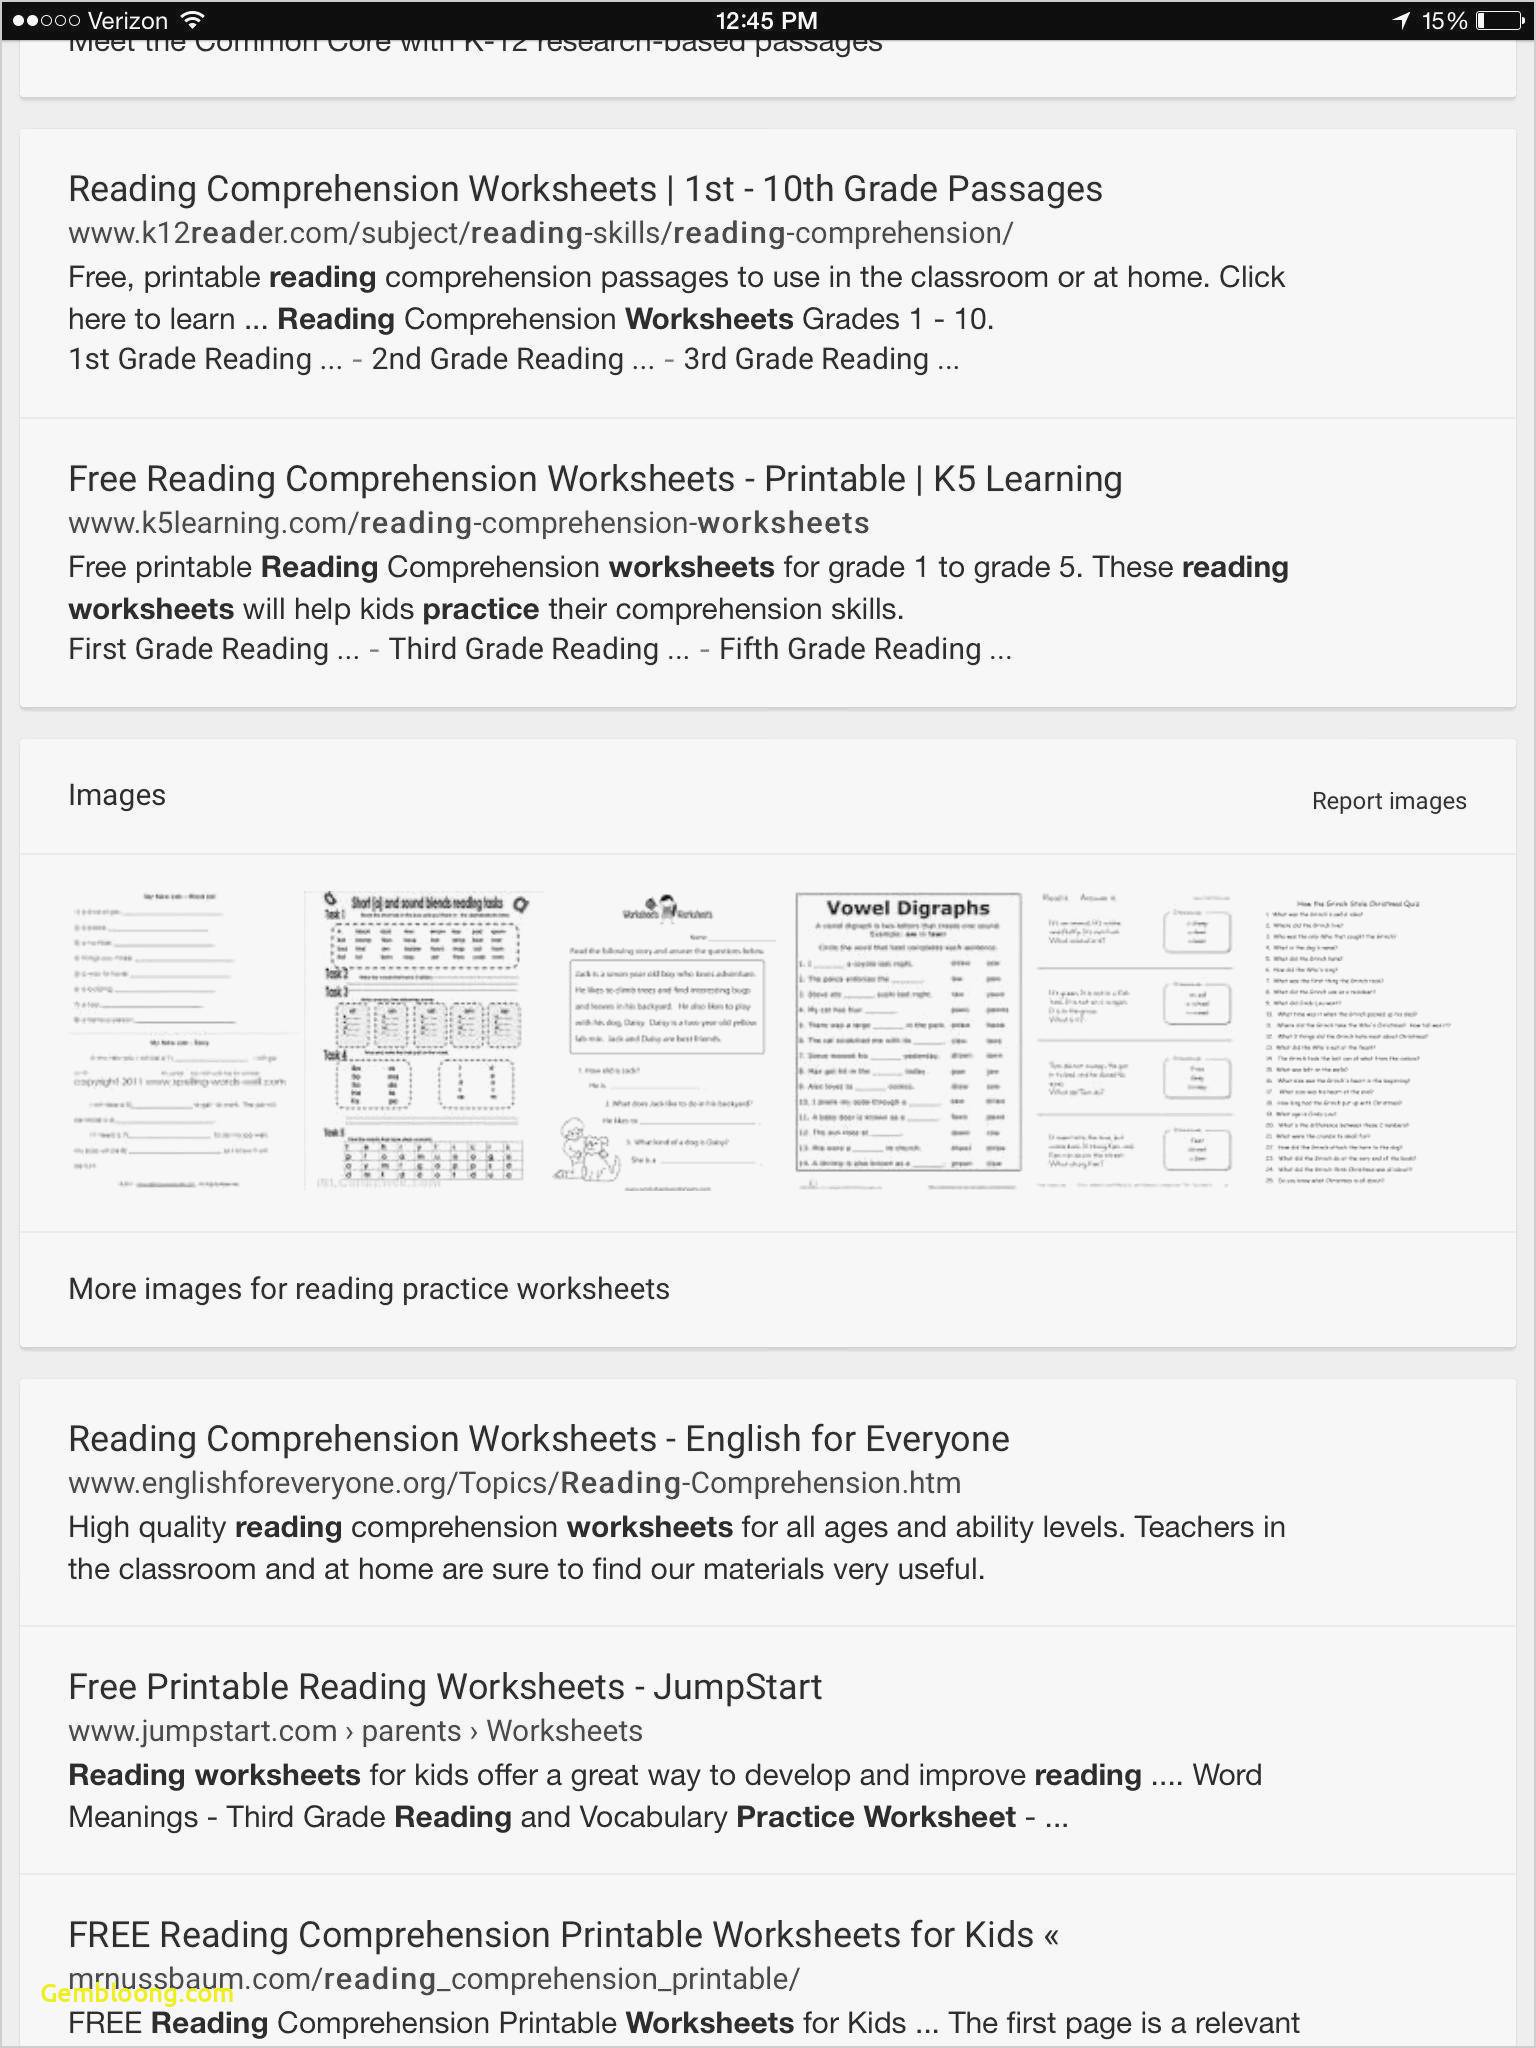 Reading Comprehension Worksheets For 1St Grade - Cramerforcongress | Third Grade Reading Worksheets Free Printable